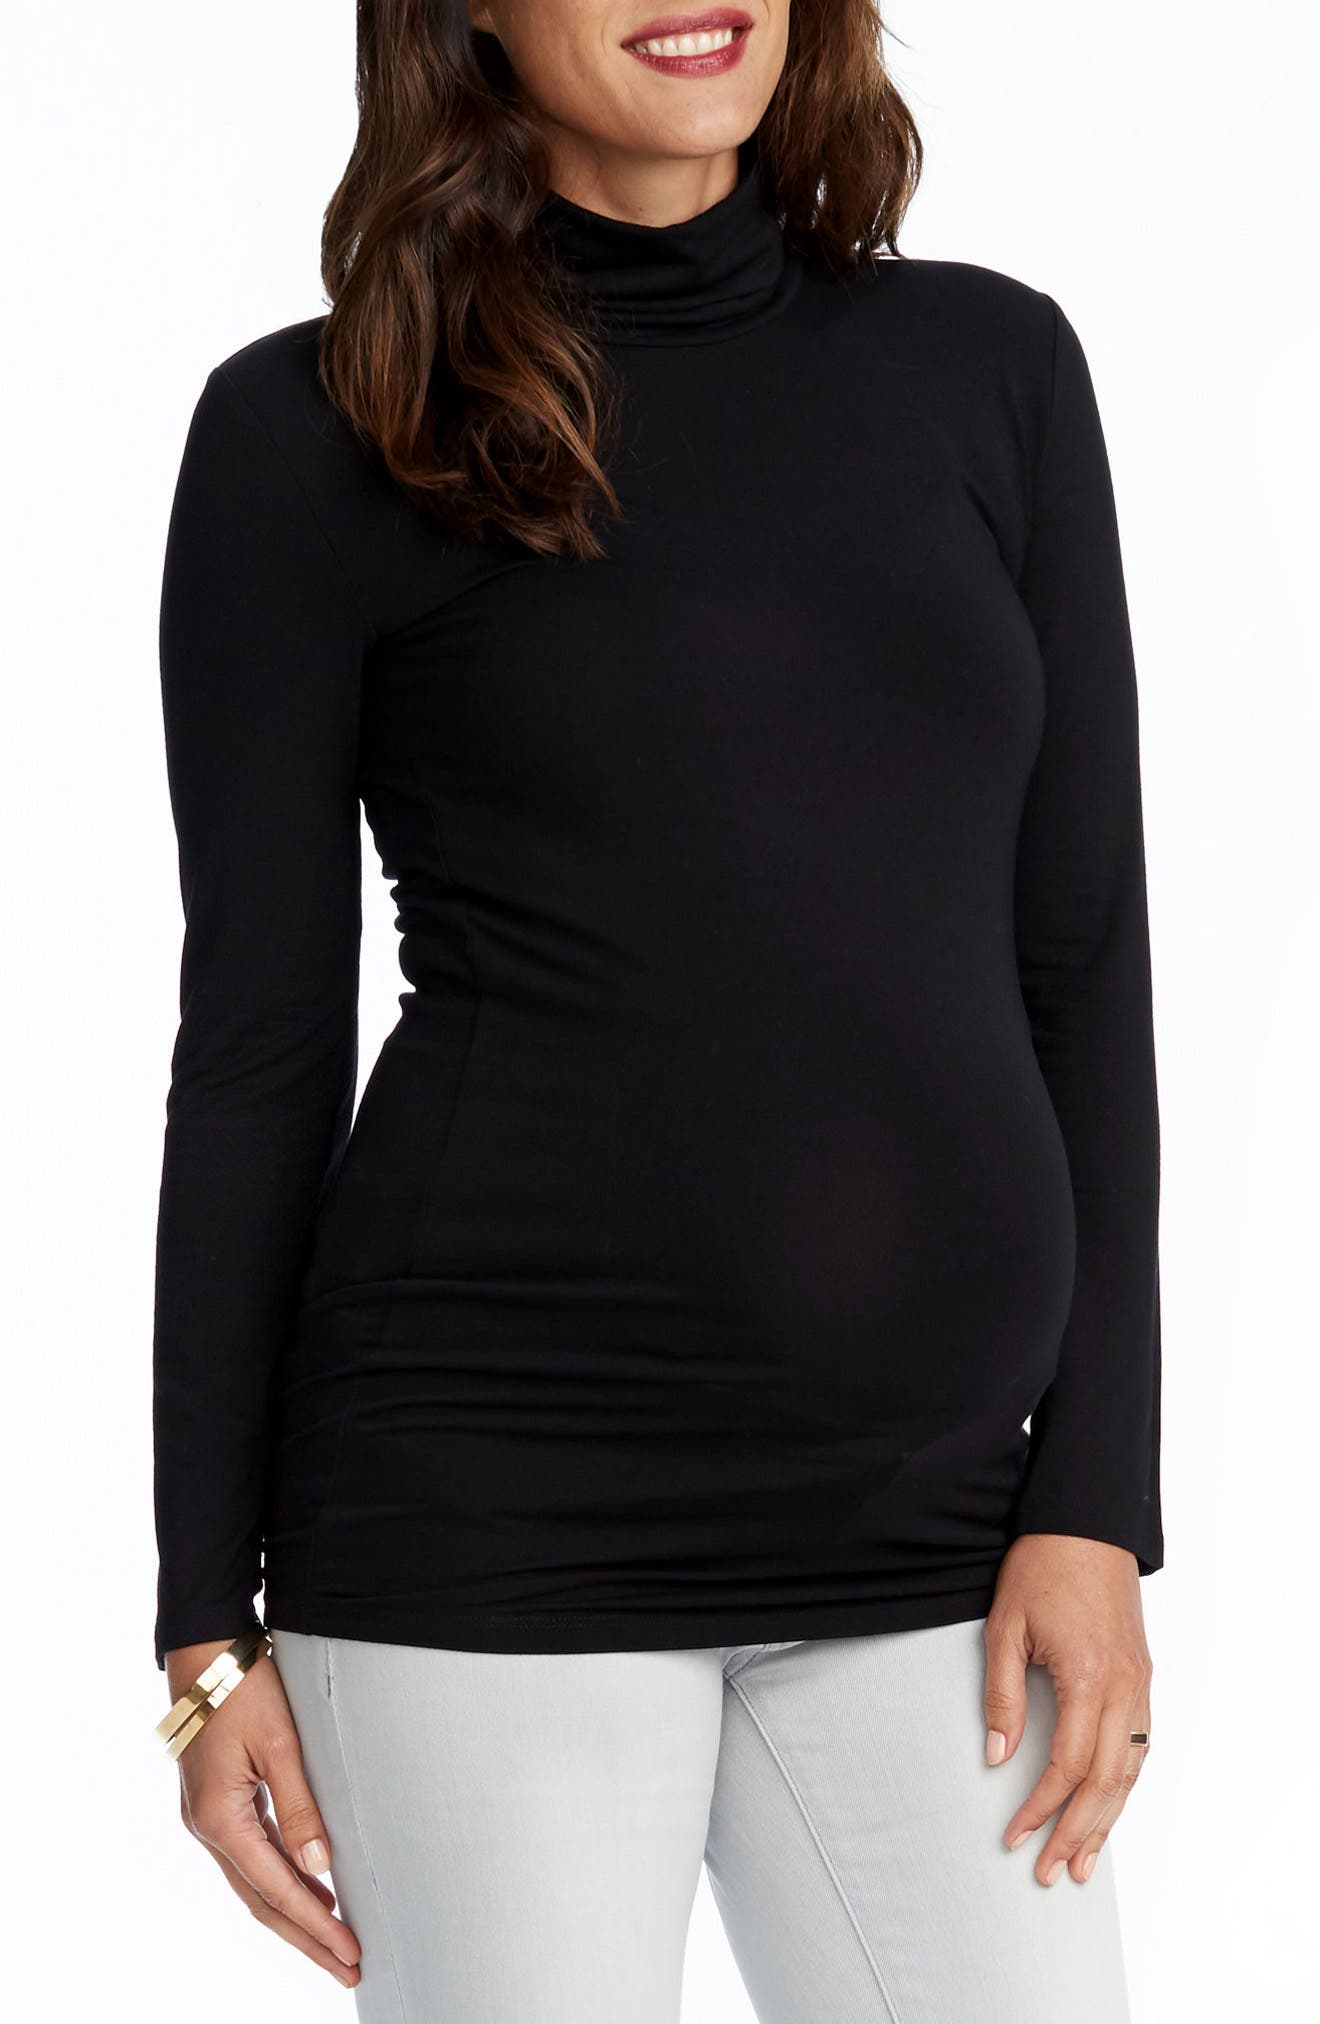 Rosie Pope Briana Maternity Turtleneck